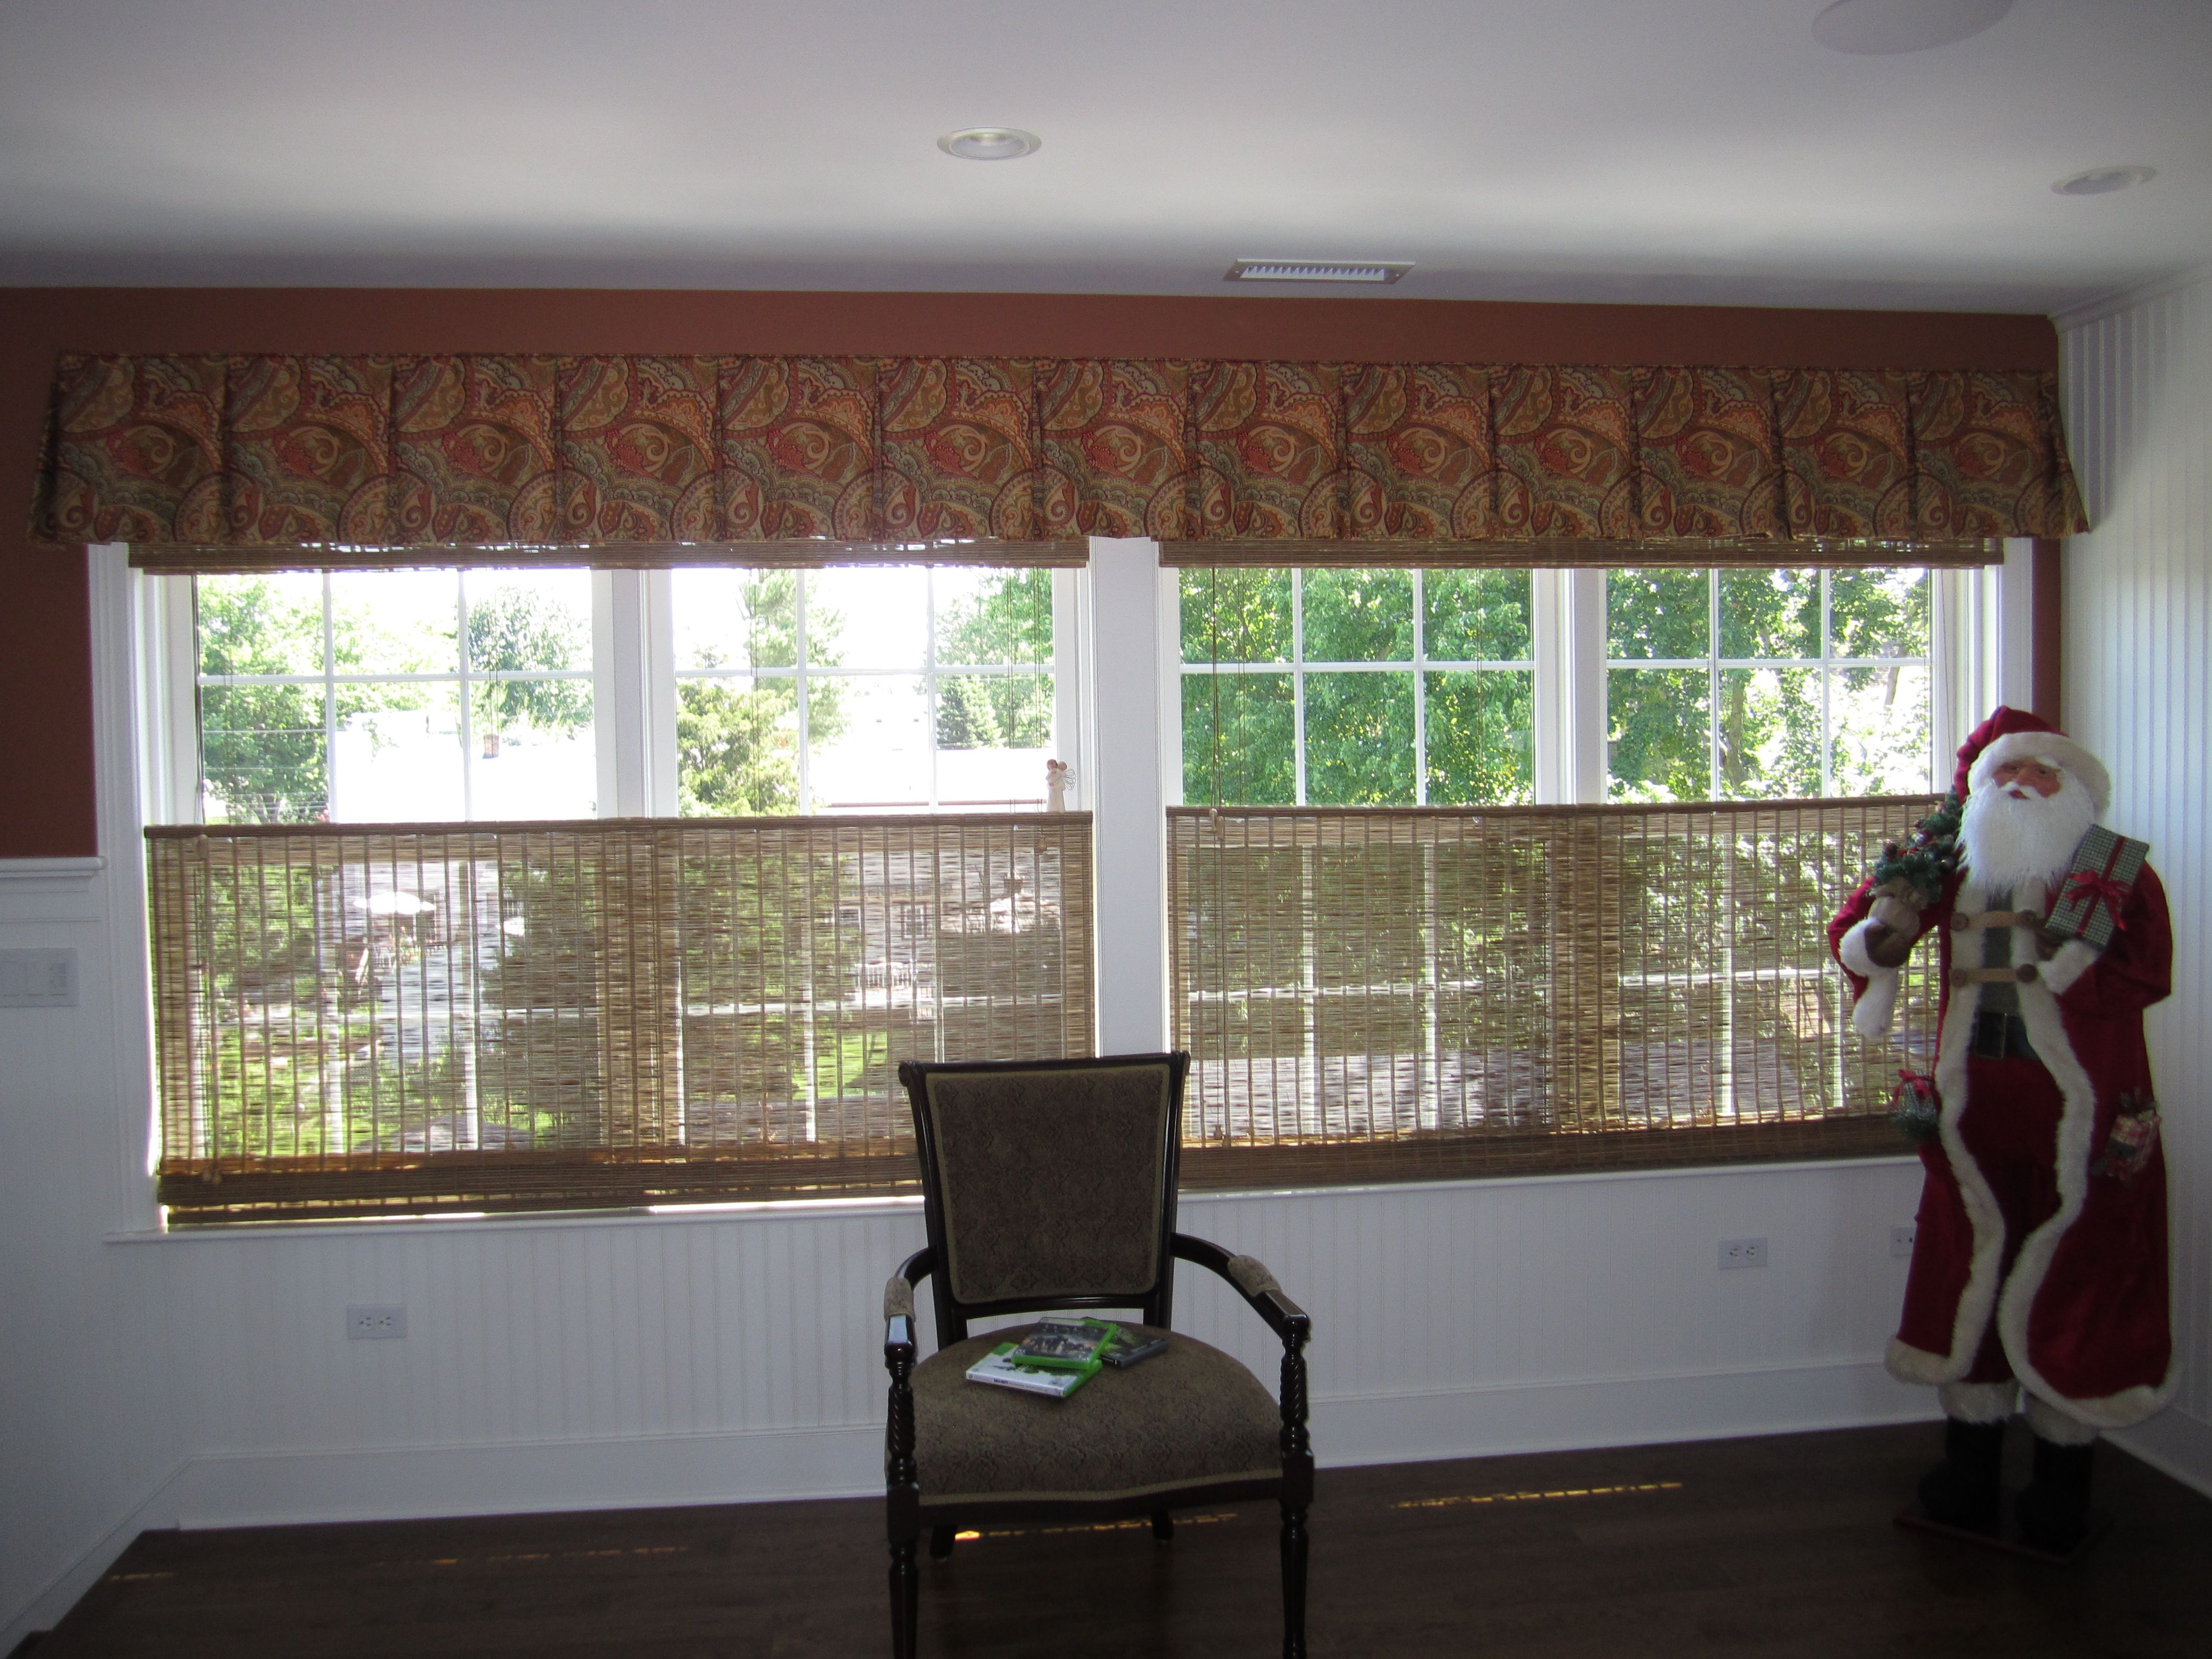 Box Pleated Valance Over Bottoms Up Tops Down Woven Wood Shades